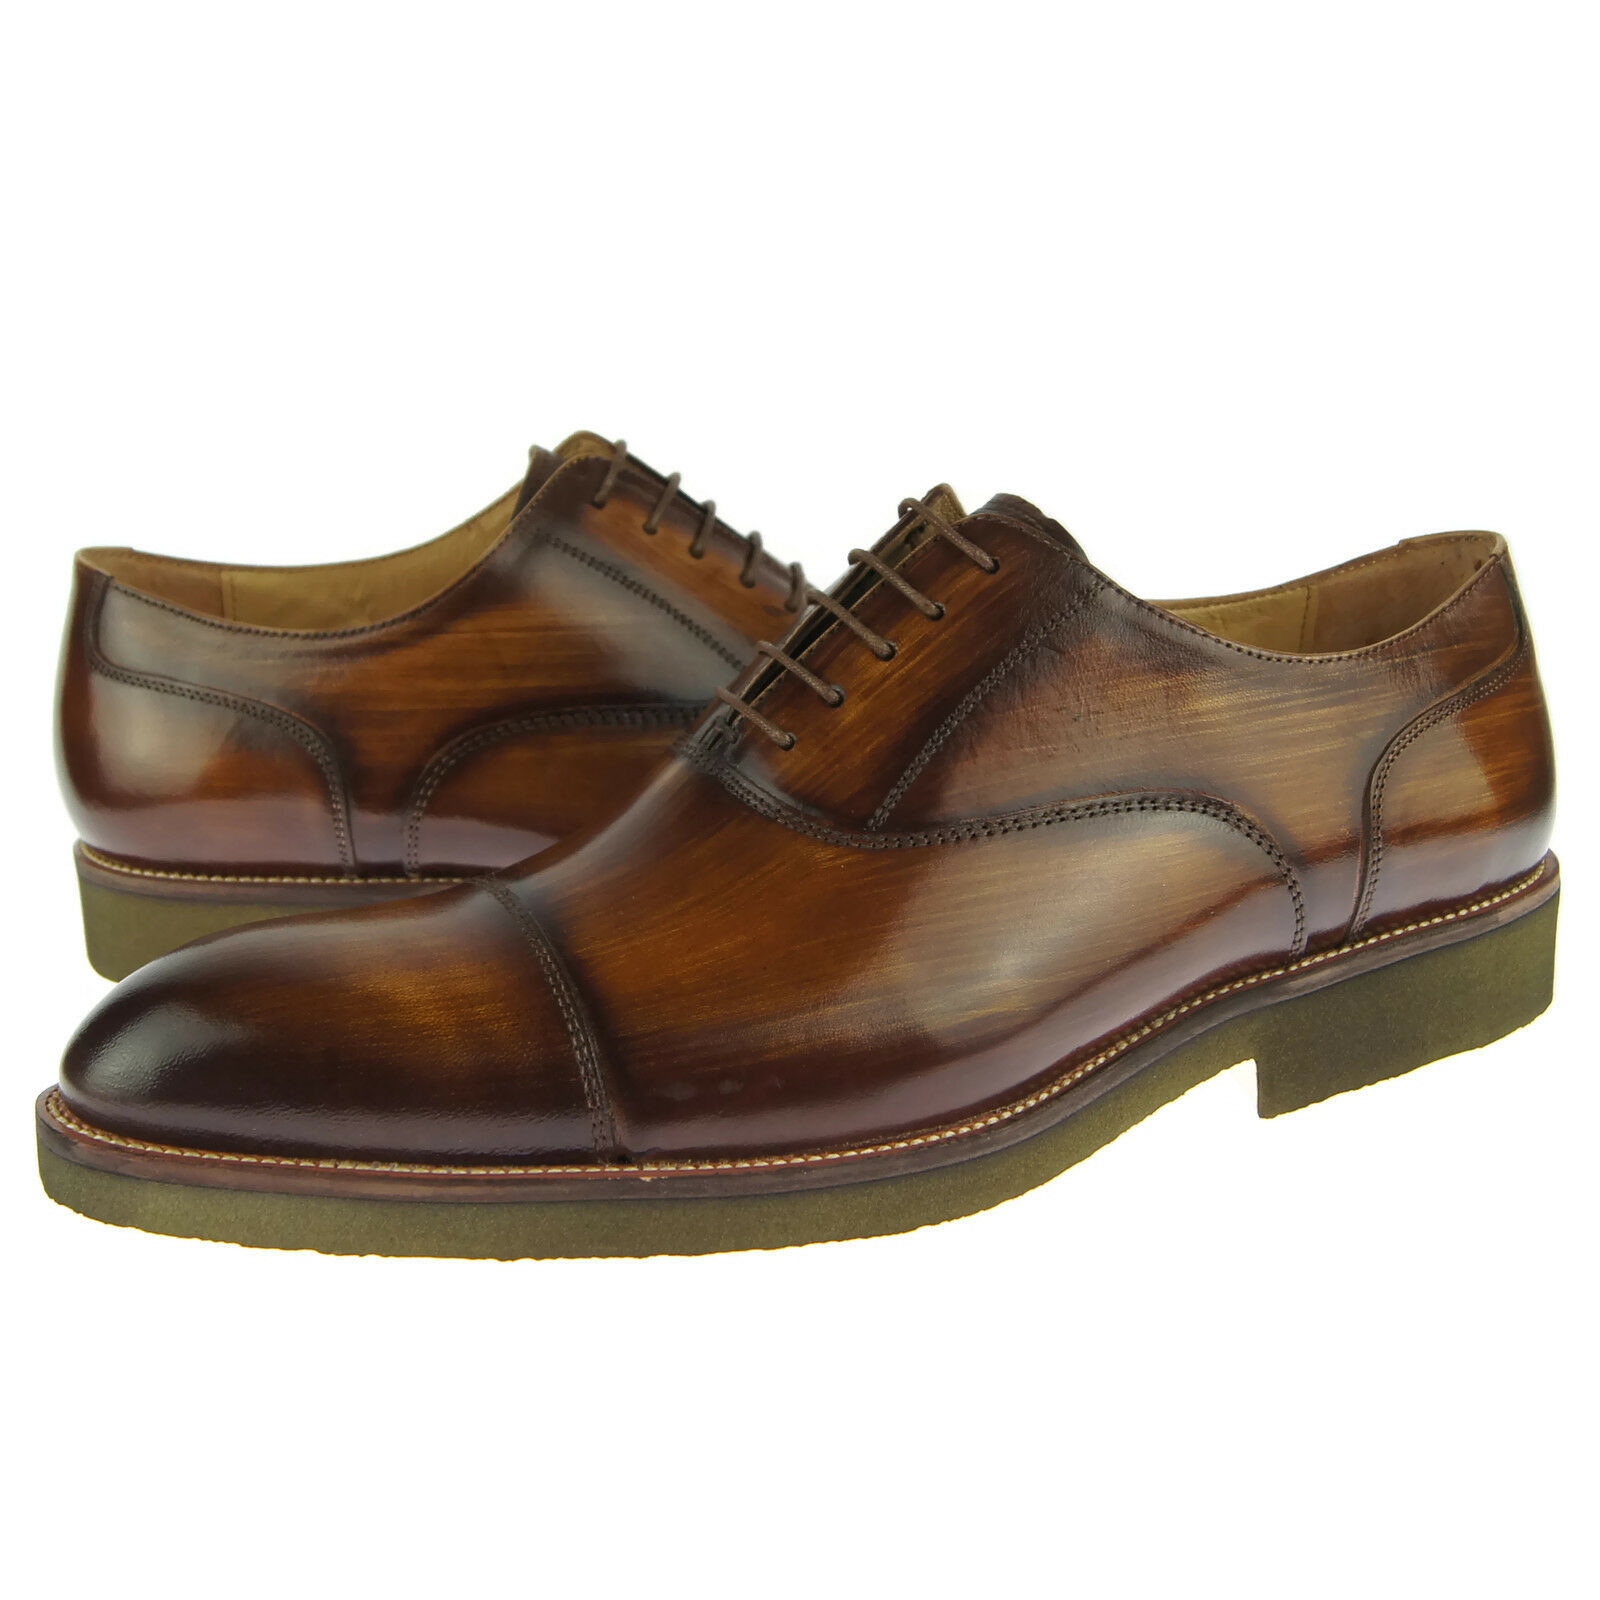 Carrucci Cap Toe Leather Oxford, Men's Dress Casual shoes, Cognac